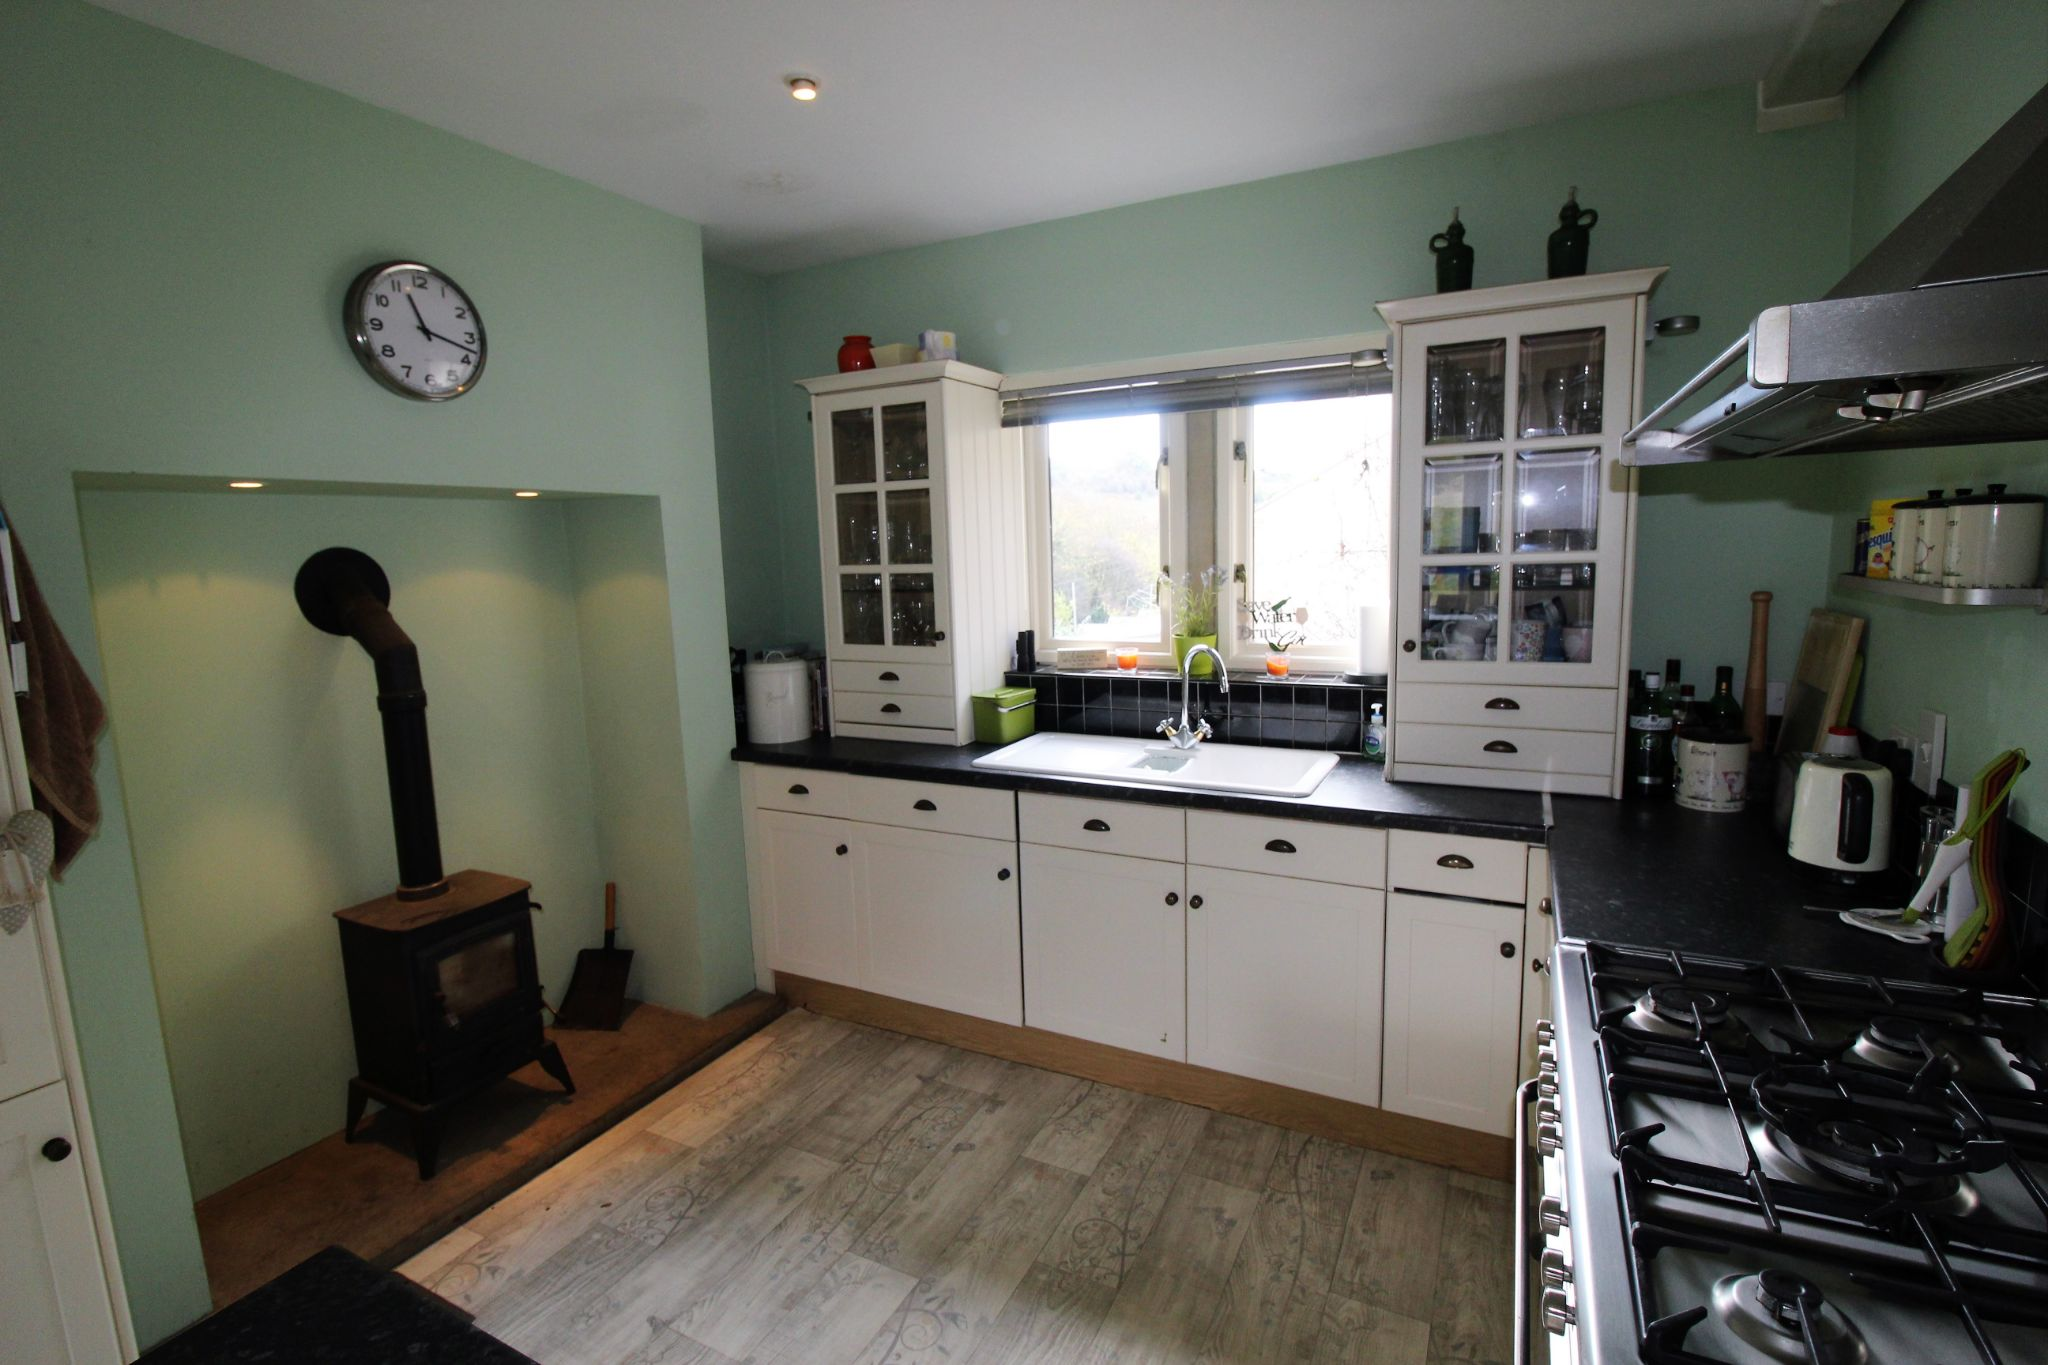 3 bedroom detached house Let in Brighouse - Kitchen